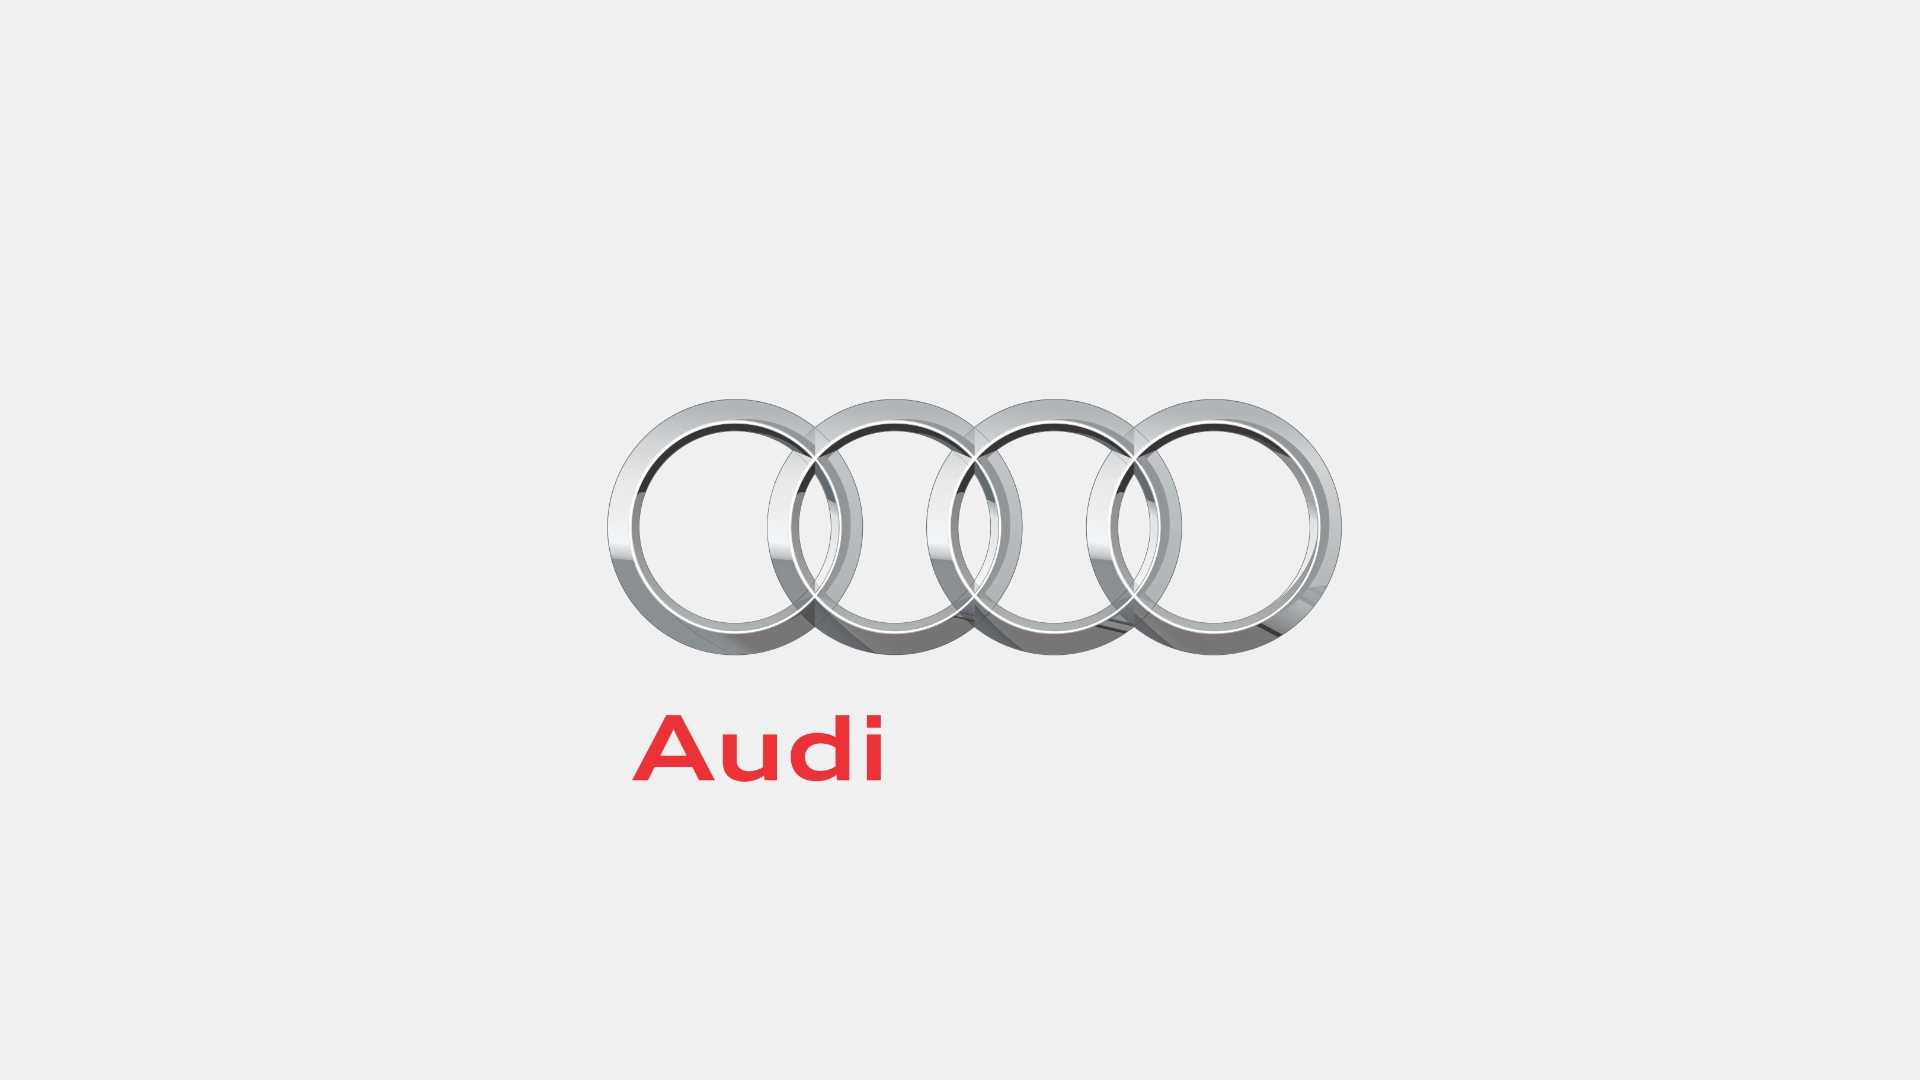 Best Black Wallpaper For Iphone Audi Logo Wallpapers Pictures Images